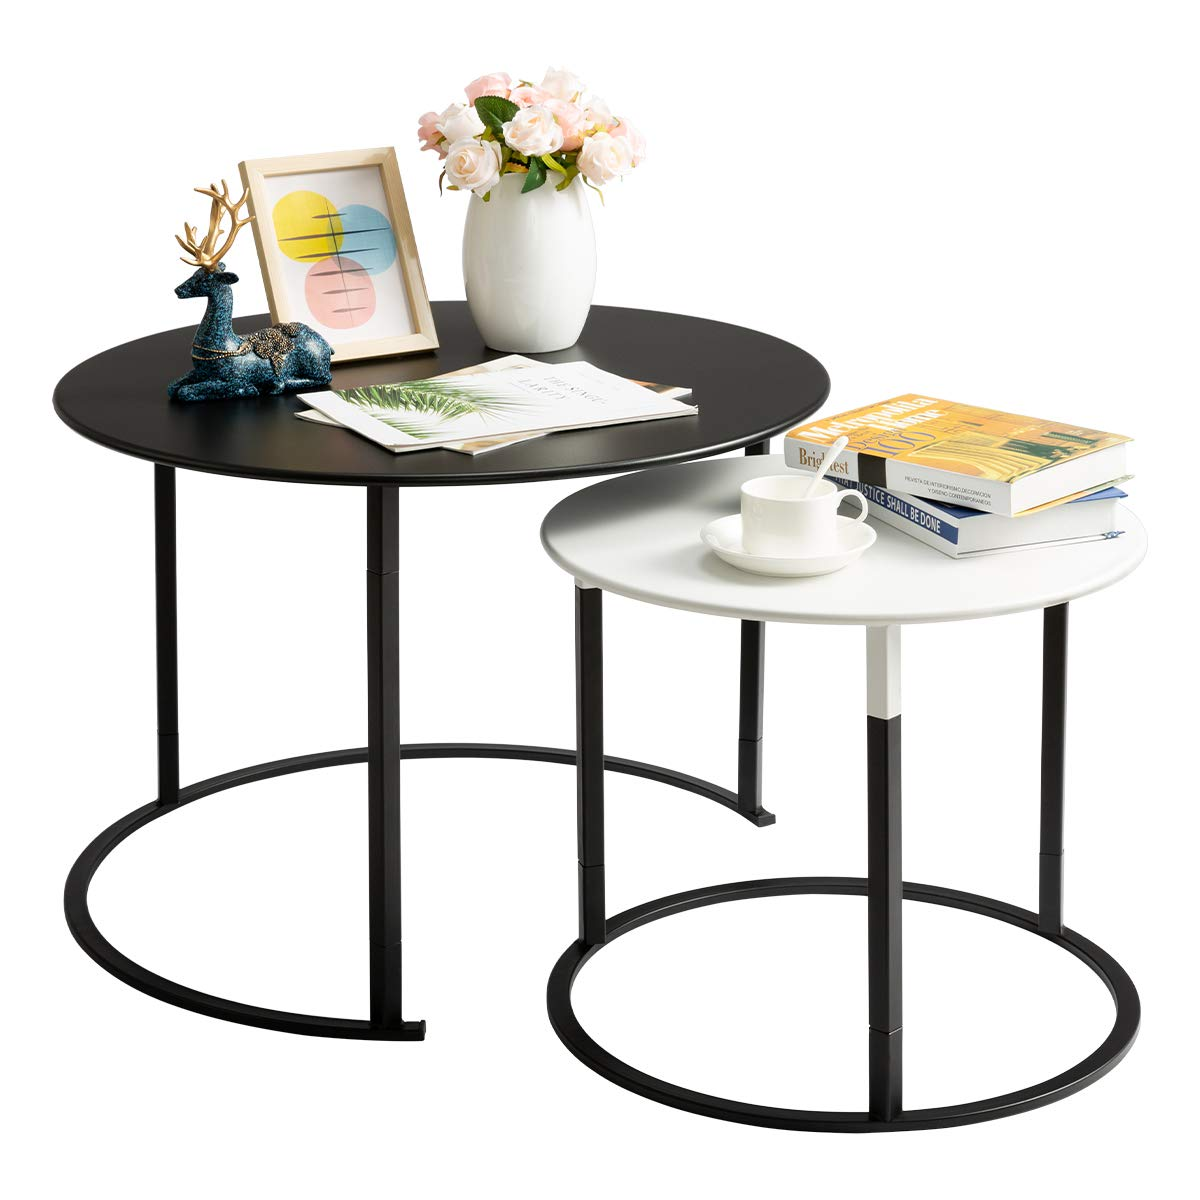 HollyHOME Modern Round Side Table Set of 2, Contemporary Accent Coffee and Snack Mental End Table, Nesting Tea Table for Living Room, (D) 27.56'' x(H) 19.69'', (D) 19.69'' x(H) 15.75'', Black and White by HollyHOME